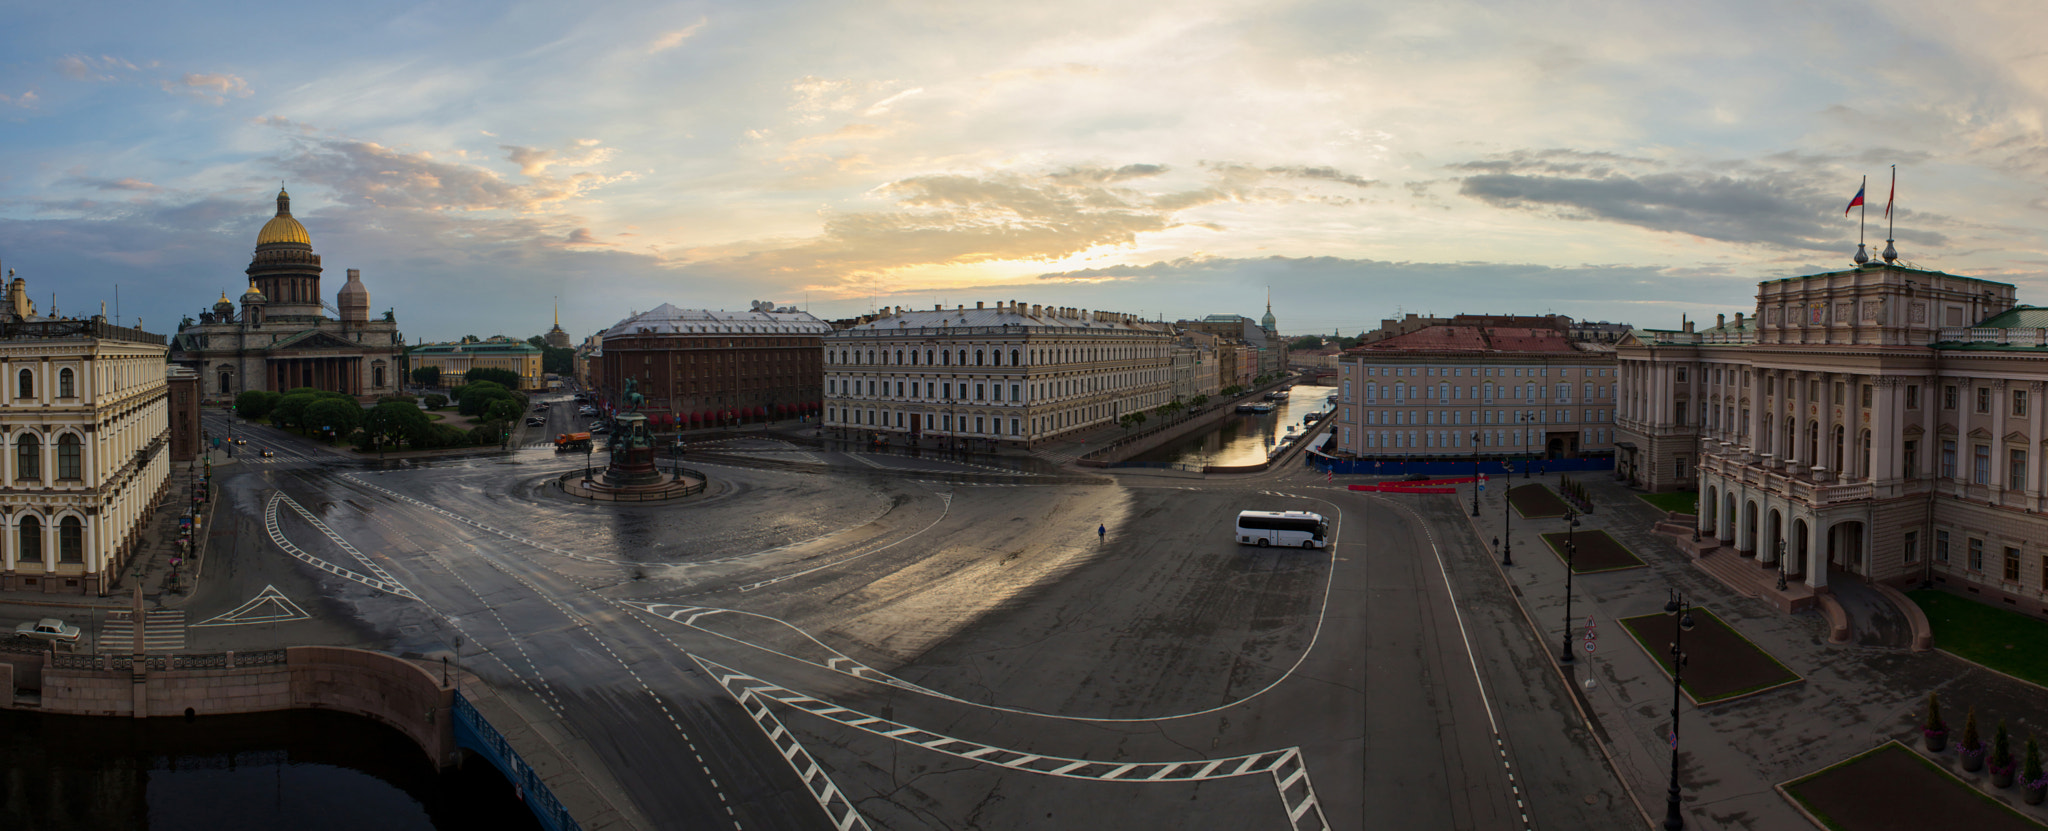 Photograph St. Isaac's Square by Anton Malkov on 500px